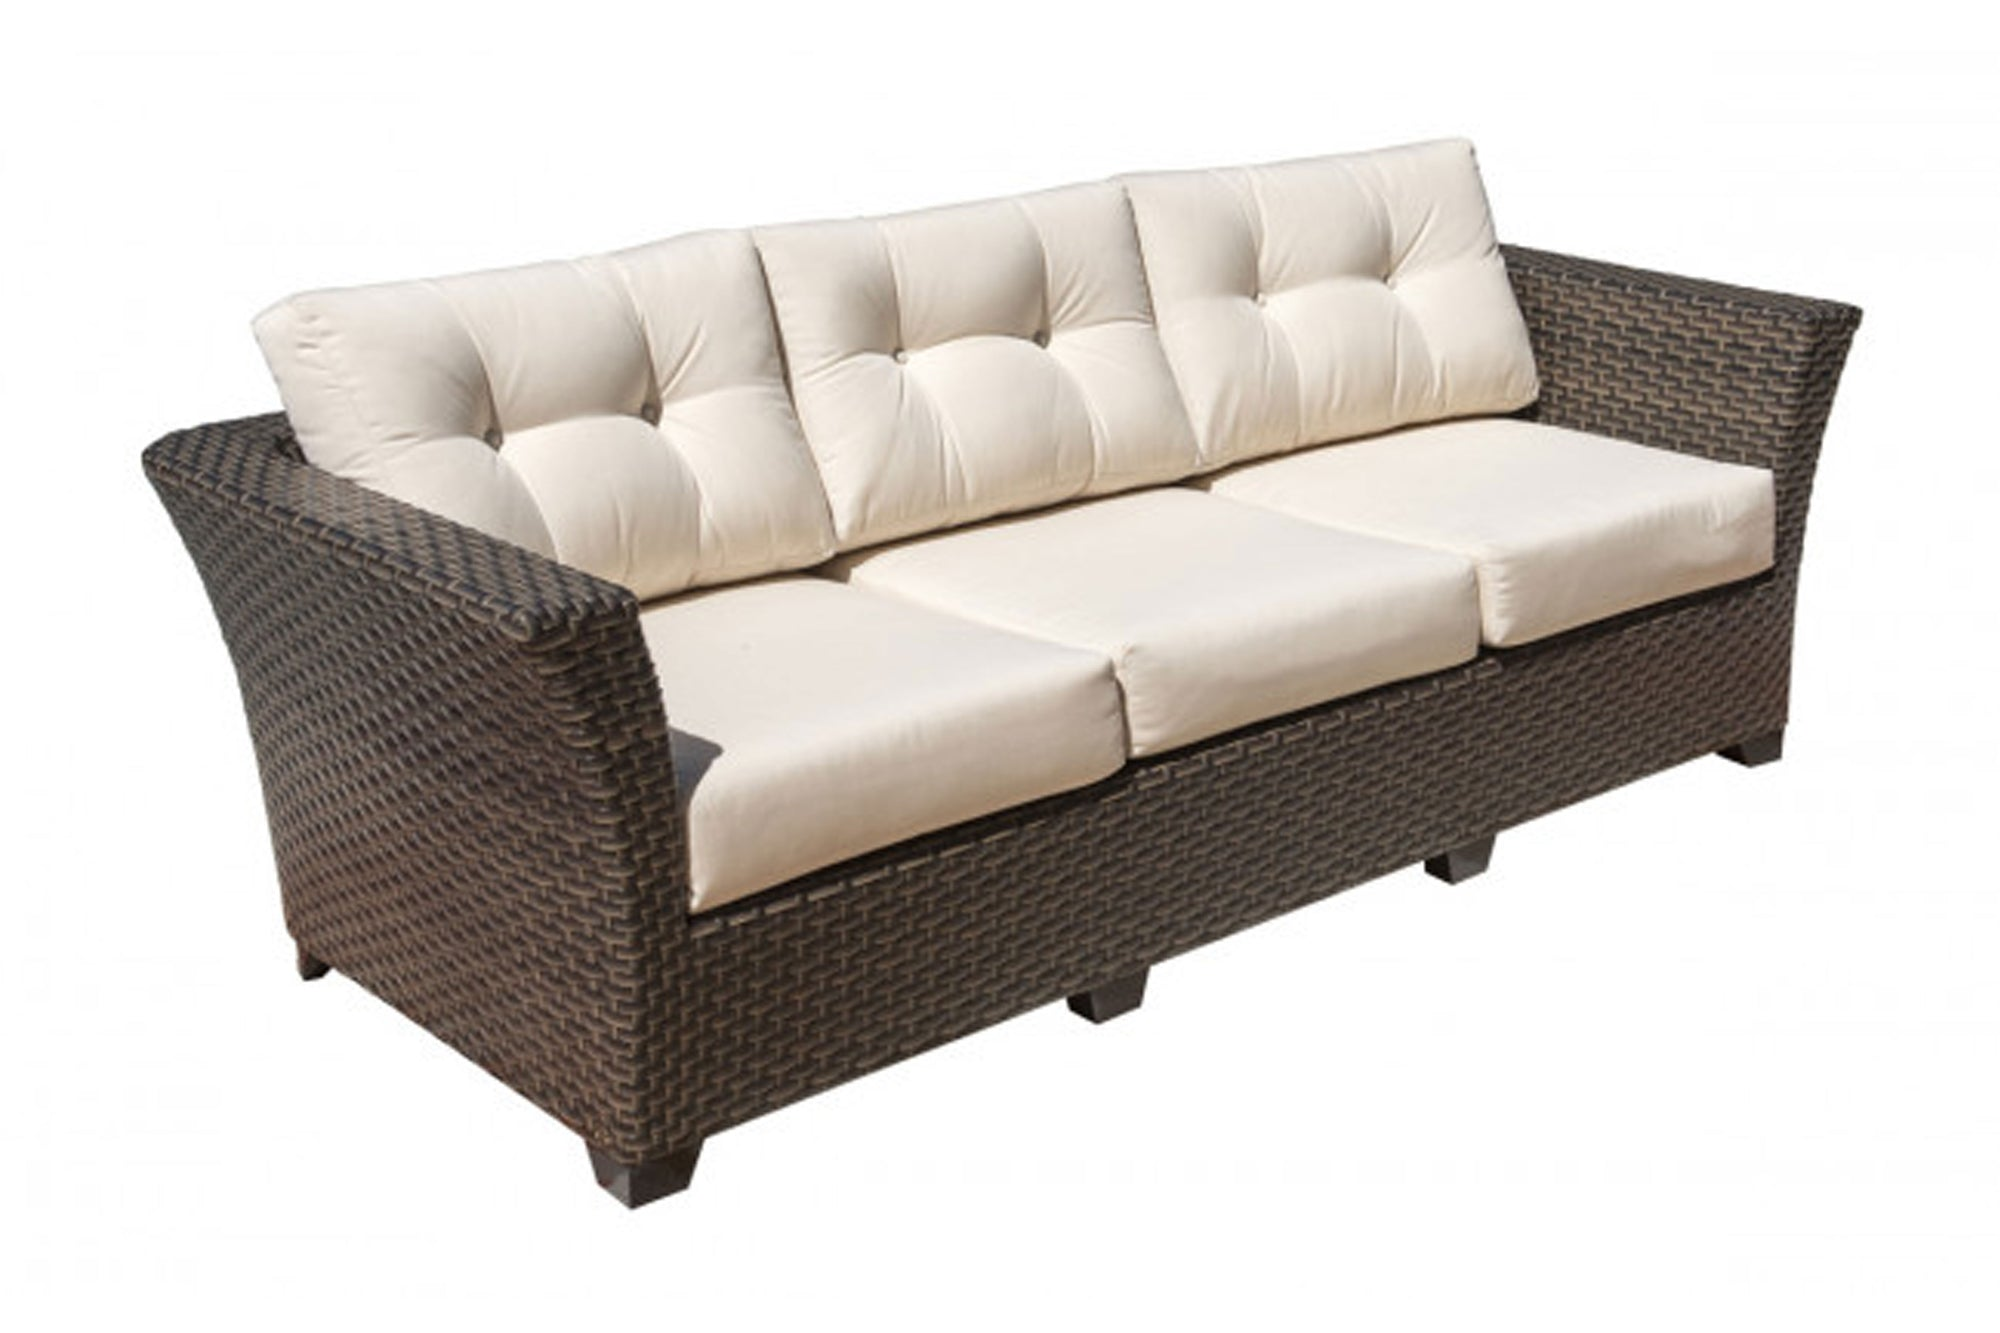 Samoa Sofa w/off-white cushion